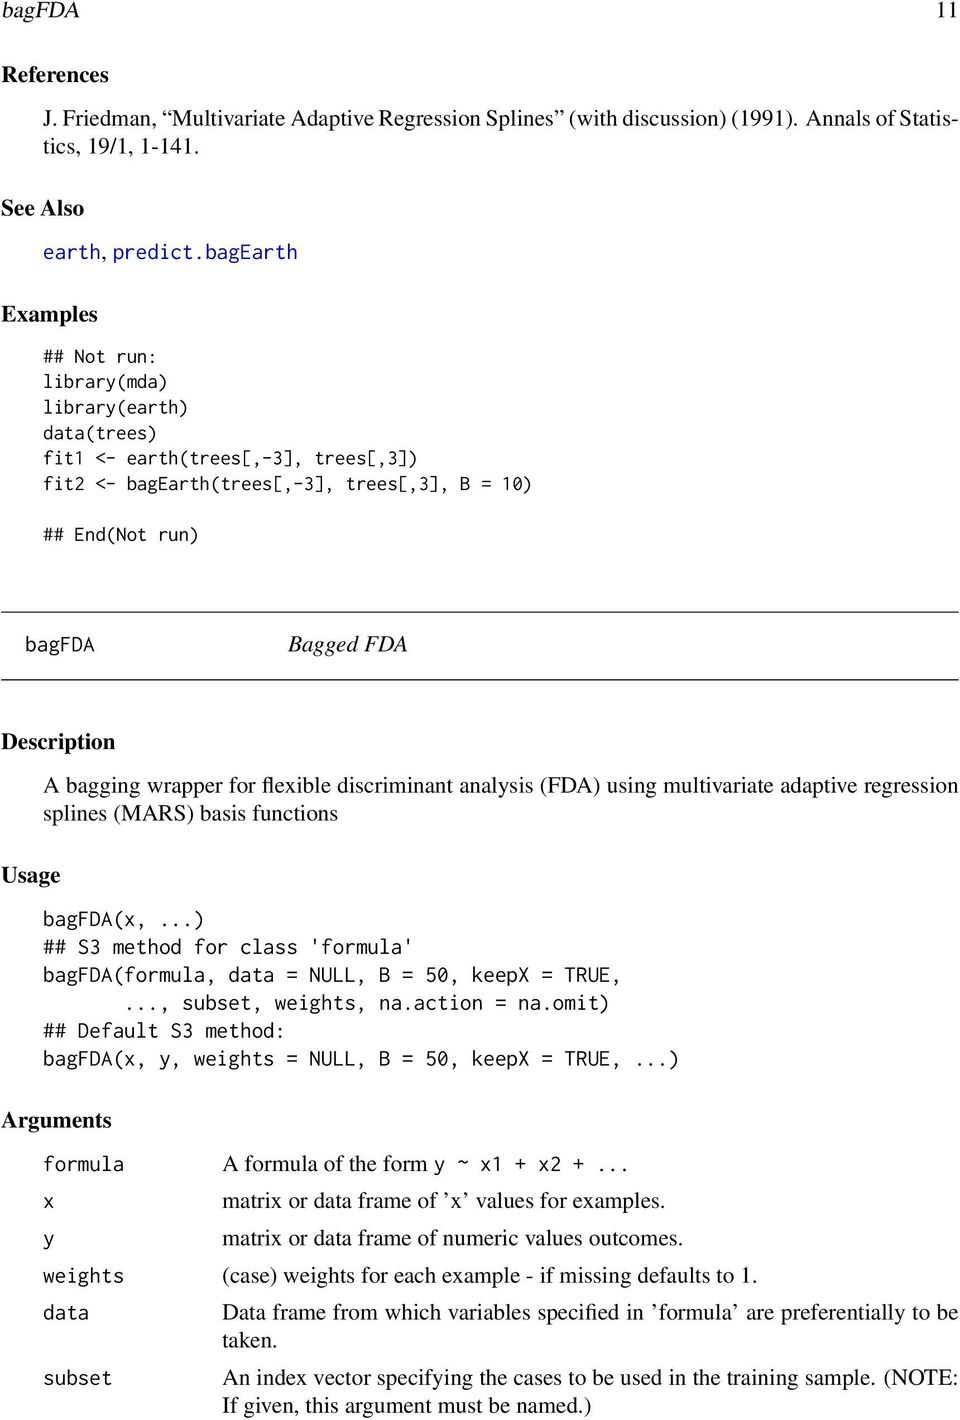 Description Usage A bagging wrapper for flexible discriminant analysis (FDA) using multivariate adaptive regression splines (MARS) basis functions bagfda(x,.